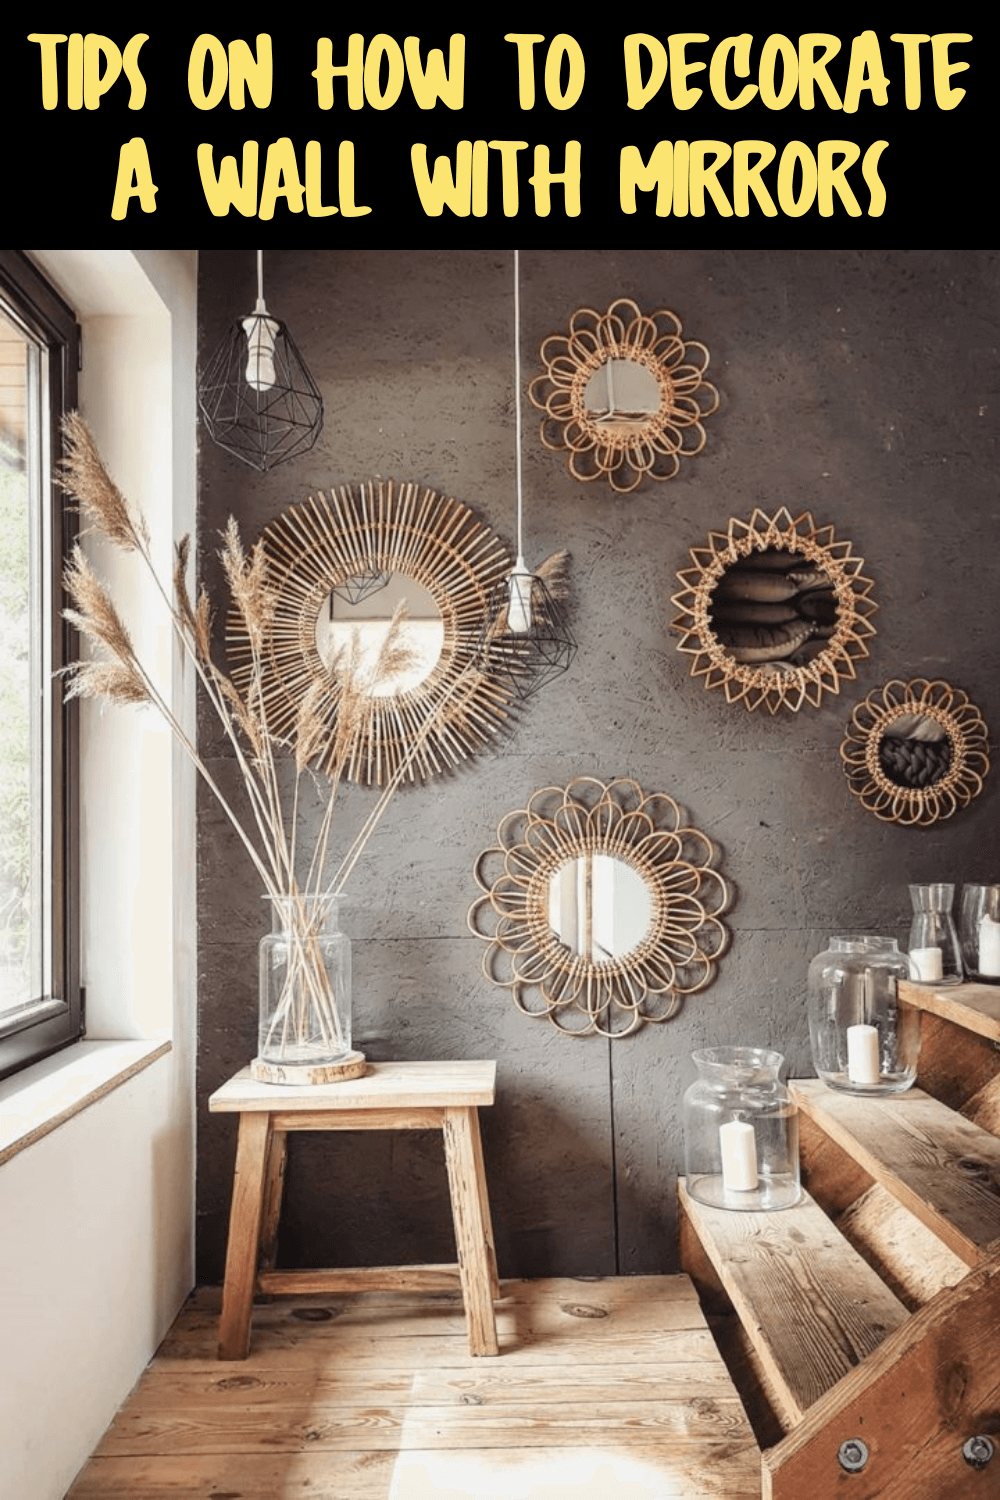 TIPS ON HOW TO DECORATE A WALL WITH MIRRORS